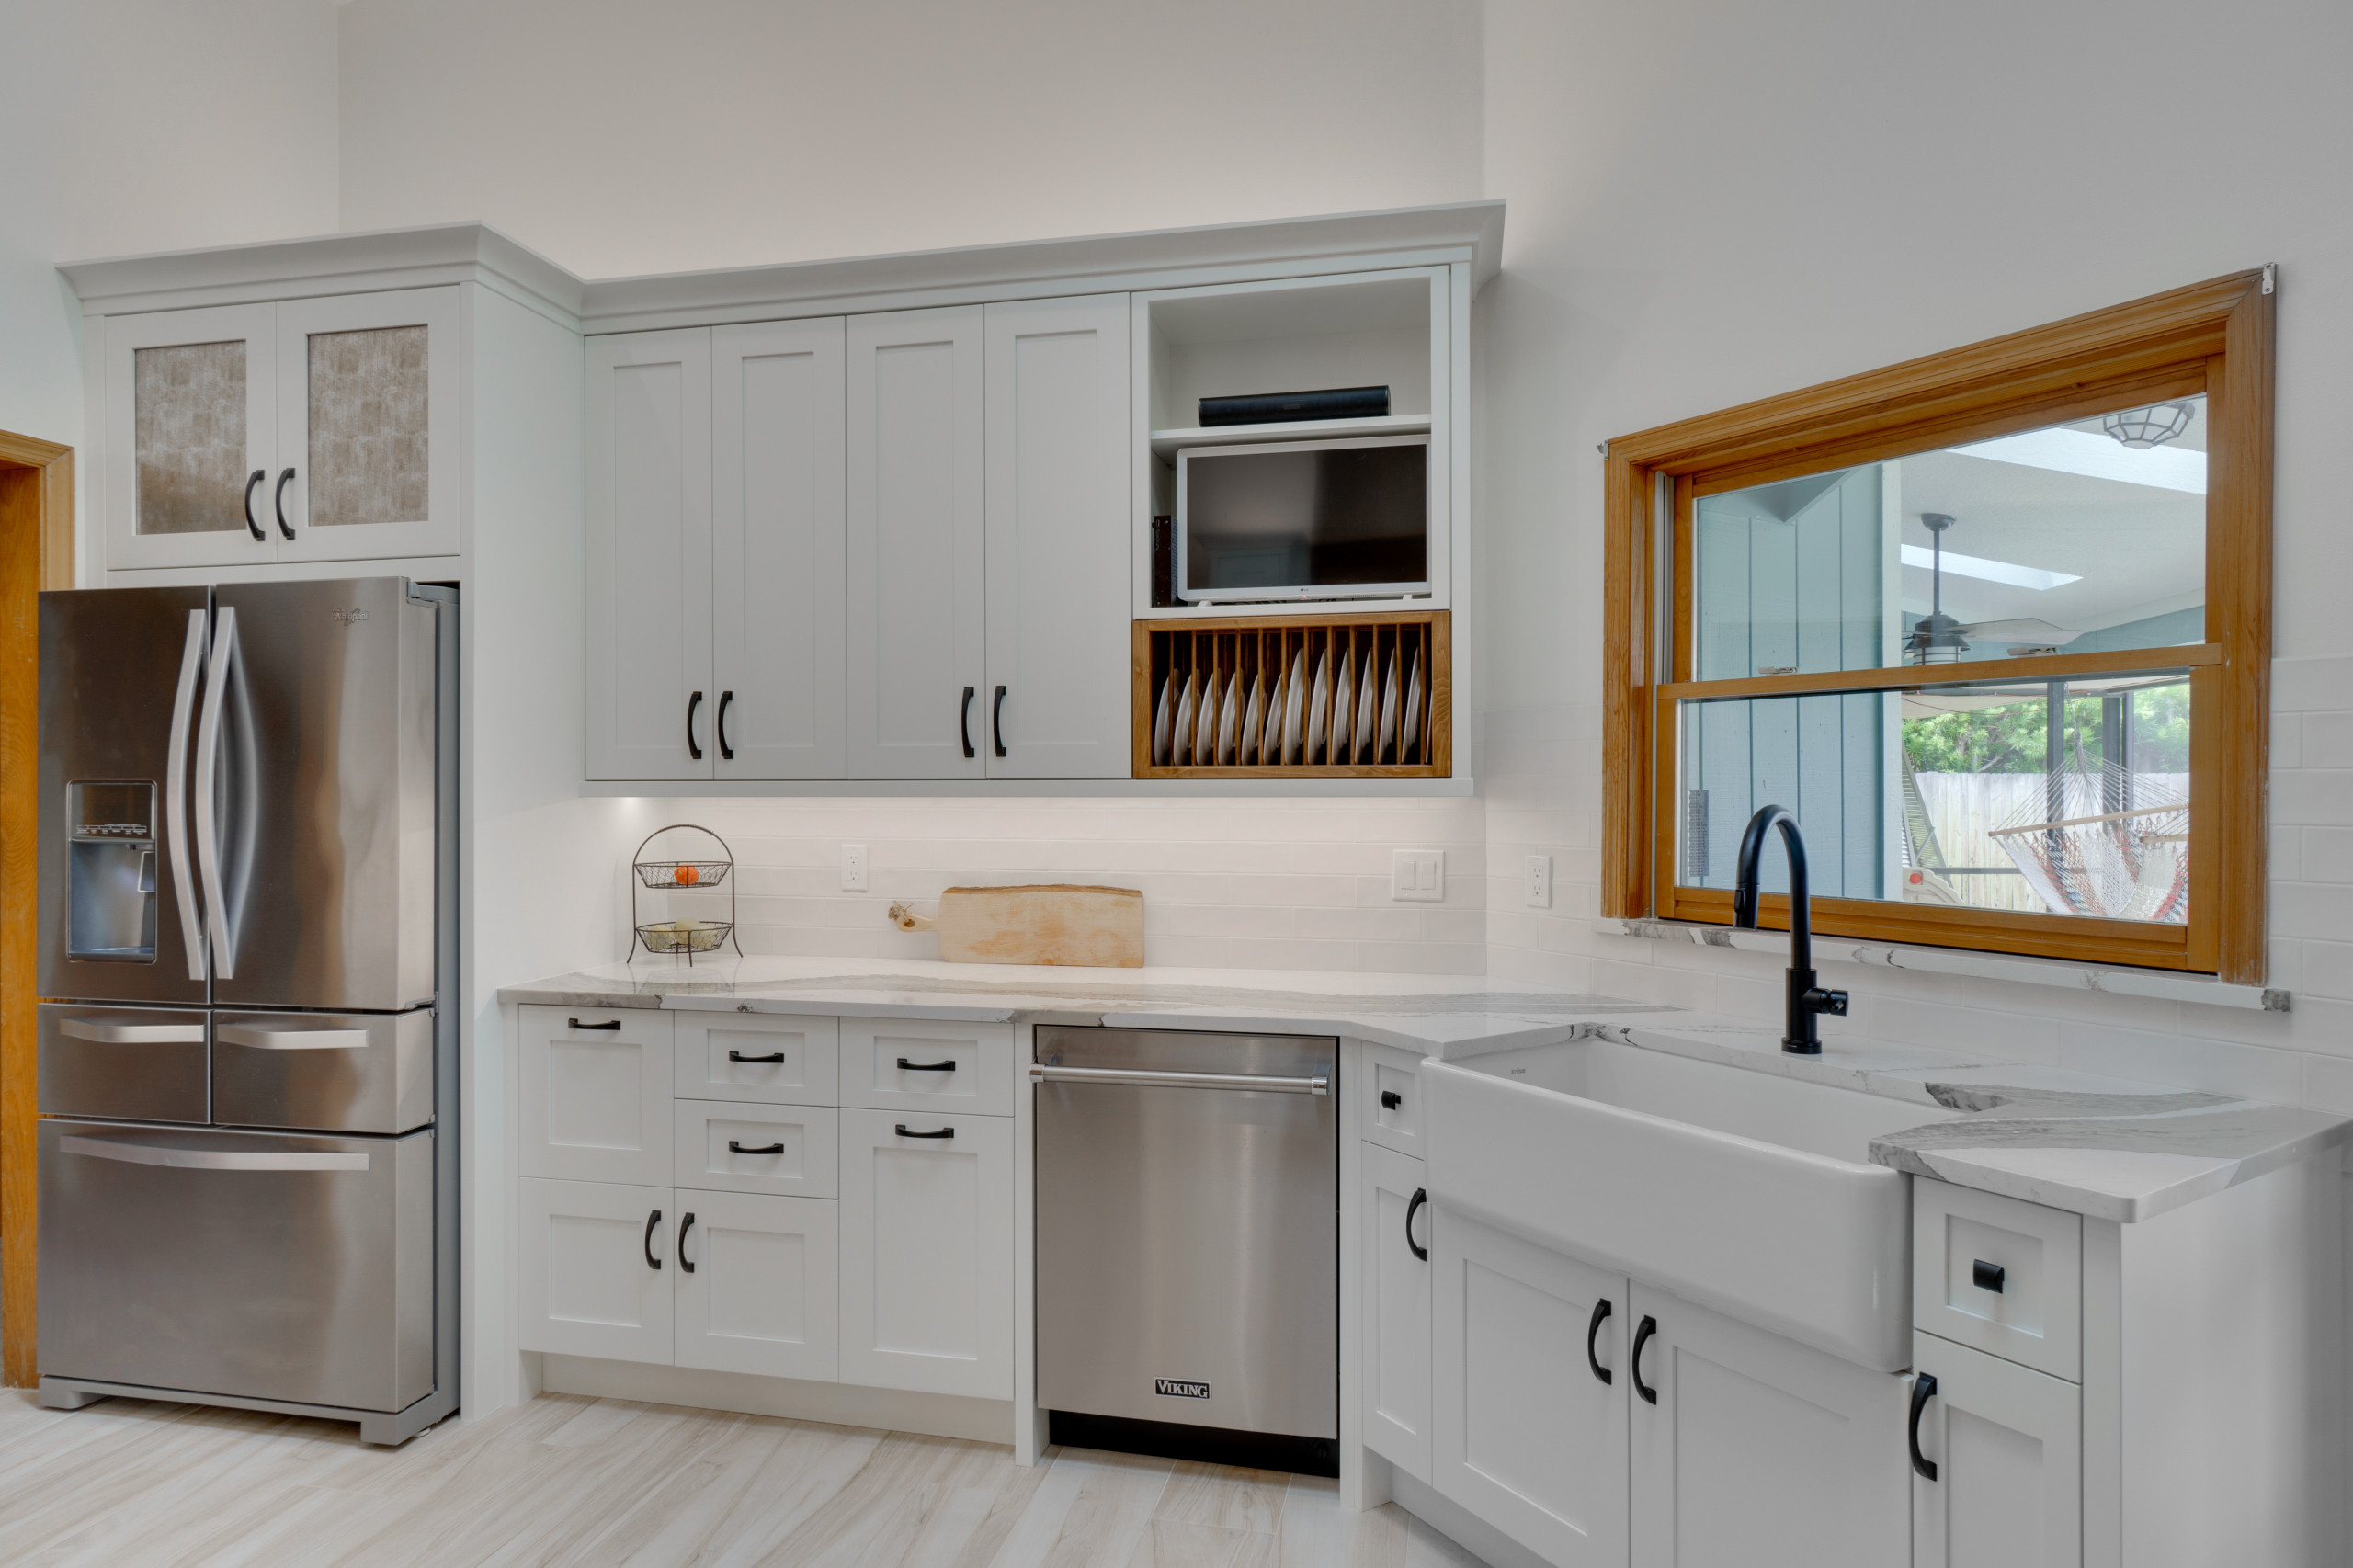 Kitchen Remodel in Painted Shaker with Stained Wood Accents